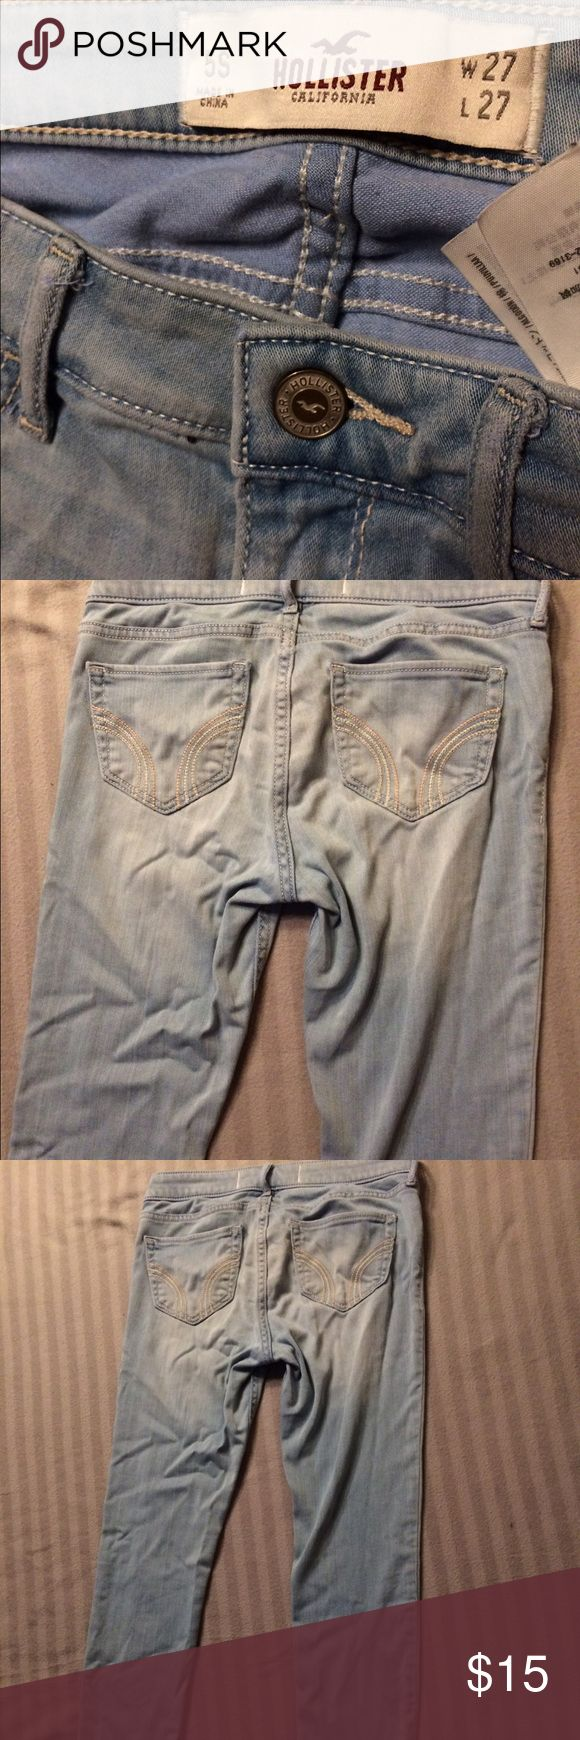 Women's Hollister light wash size 5s skinny jeans Womens hollister legging jeans skinny light wash, not regular skinny jeans but the legging stretch ones size 5 short W 27 L 27 may be typical signs of wear but great condition Hollister Jeans Skinny